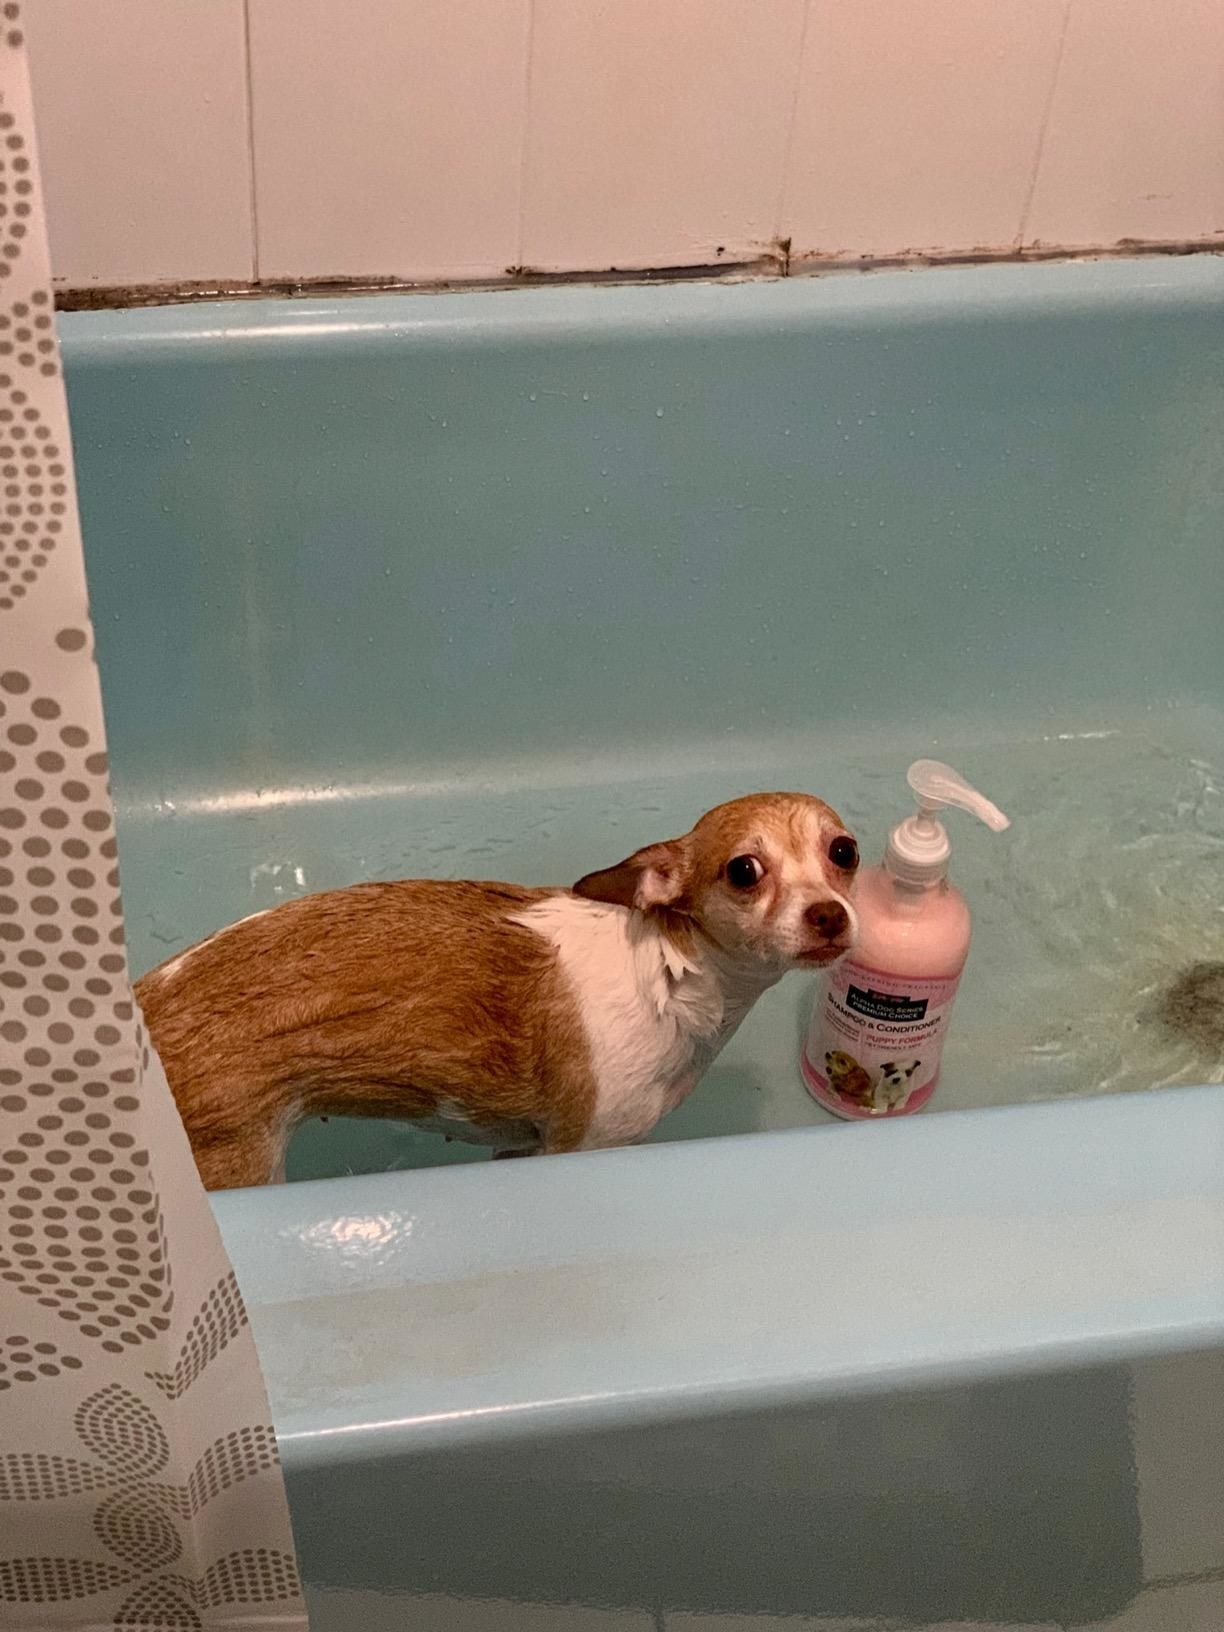 wet dog in bath next to large shampoo bottle with pump